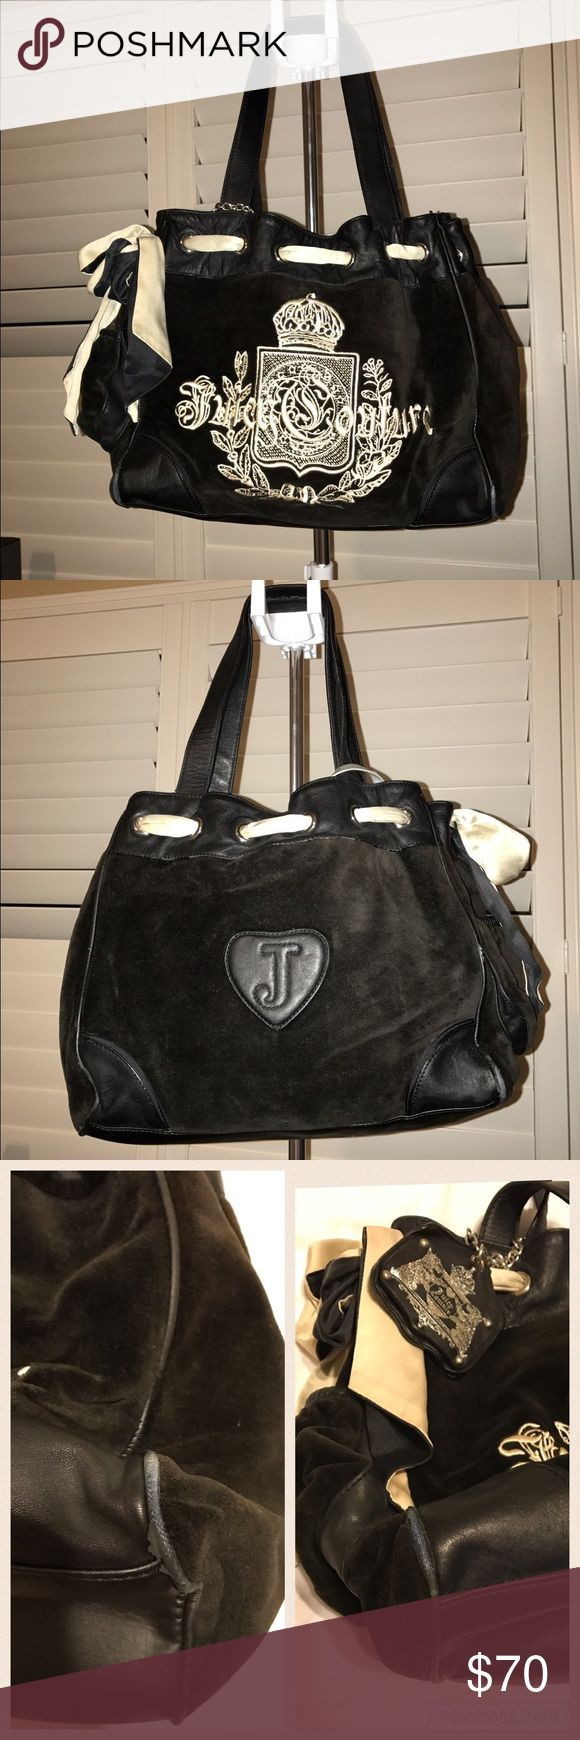 Juicy Couture Handbag Preowned This is my Juicy Couture Handbag in good condition. I had this bag for 9 years now & used it a lot the 1st year. Cute just a carry on or a diaper bag. Dimensions are 13x10x6 ribbon is kinda dirty but u can take it off and clean it . Super cute Velvet Material. Bought it New for $200 way back & I just wanna get rid of it. Please check the bottom of the bag as u can see the metal peeling off but has no holes. Other than that it's in good used condition & has lots…